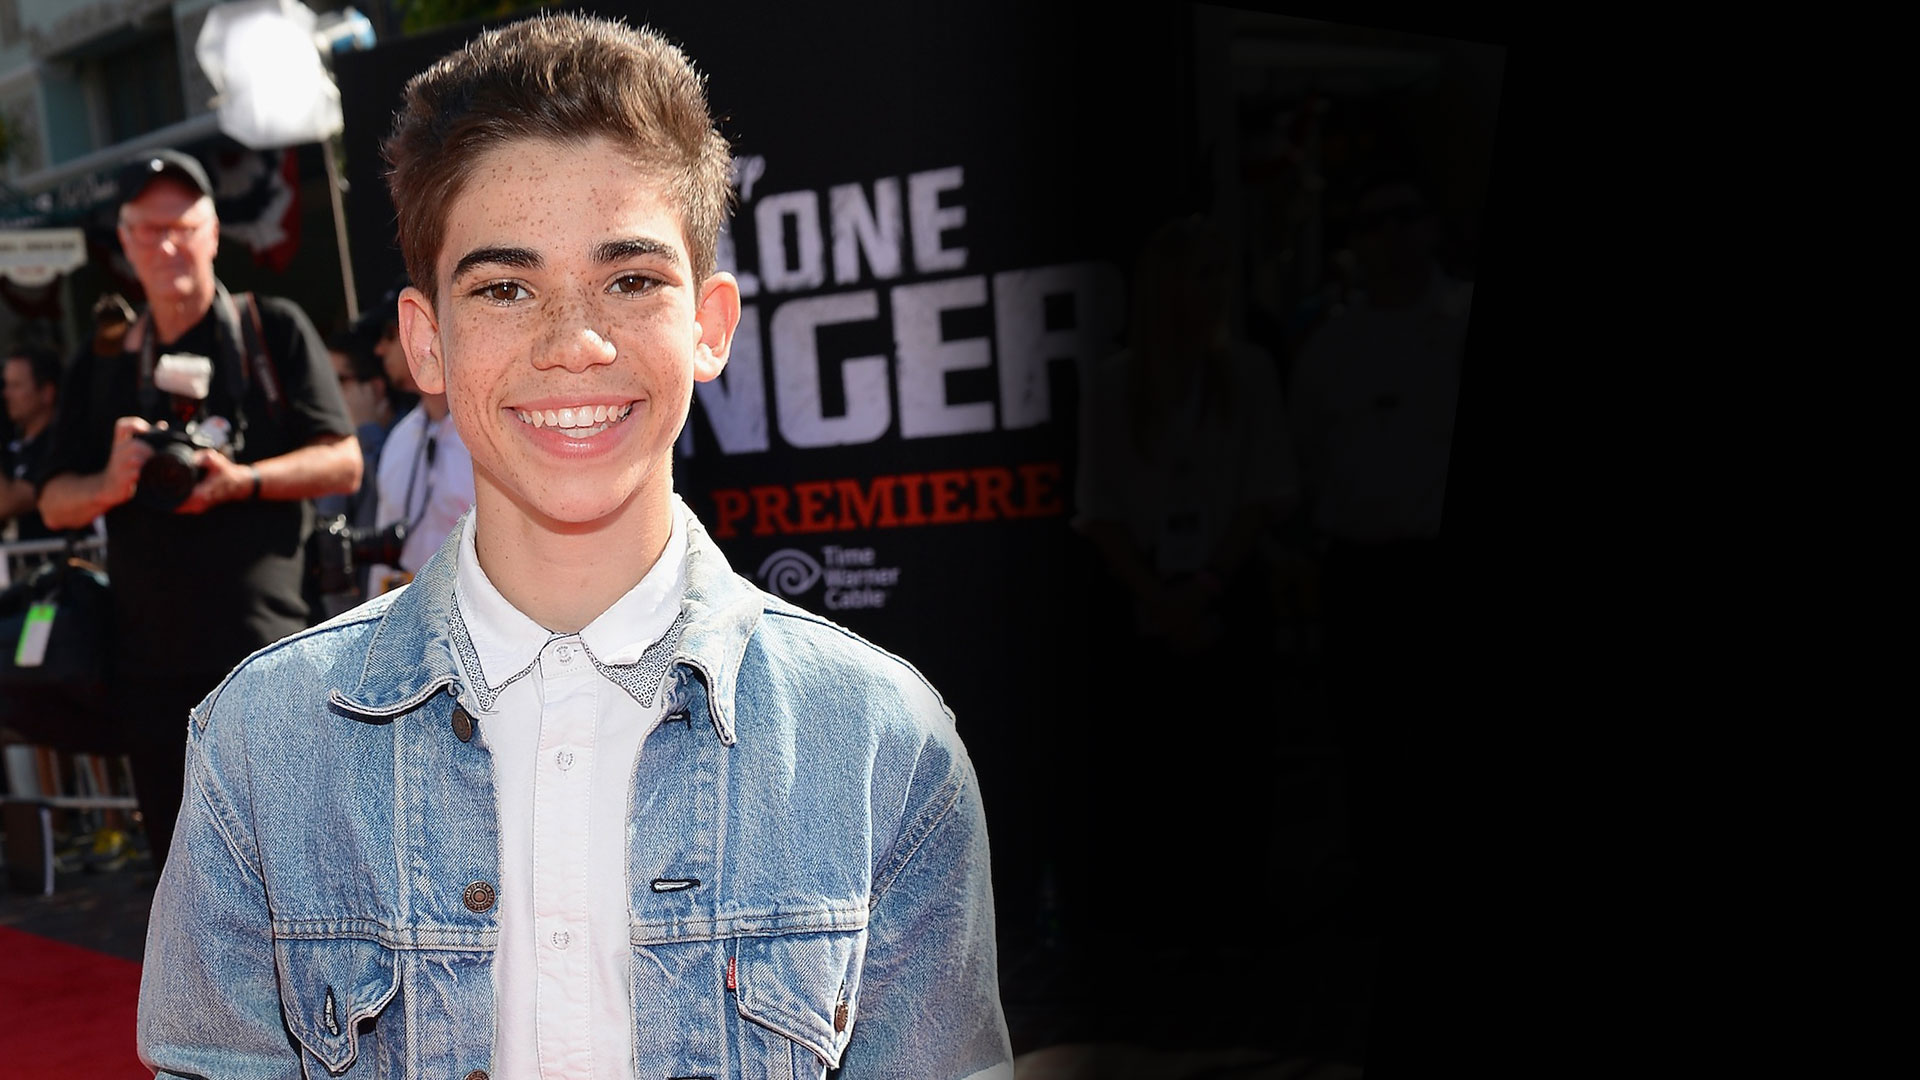 Oops Did Cameron Boyce Have a Costume Fail on the Set of 1920x1080